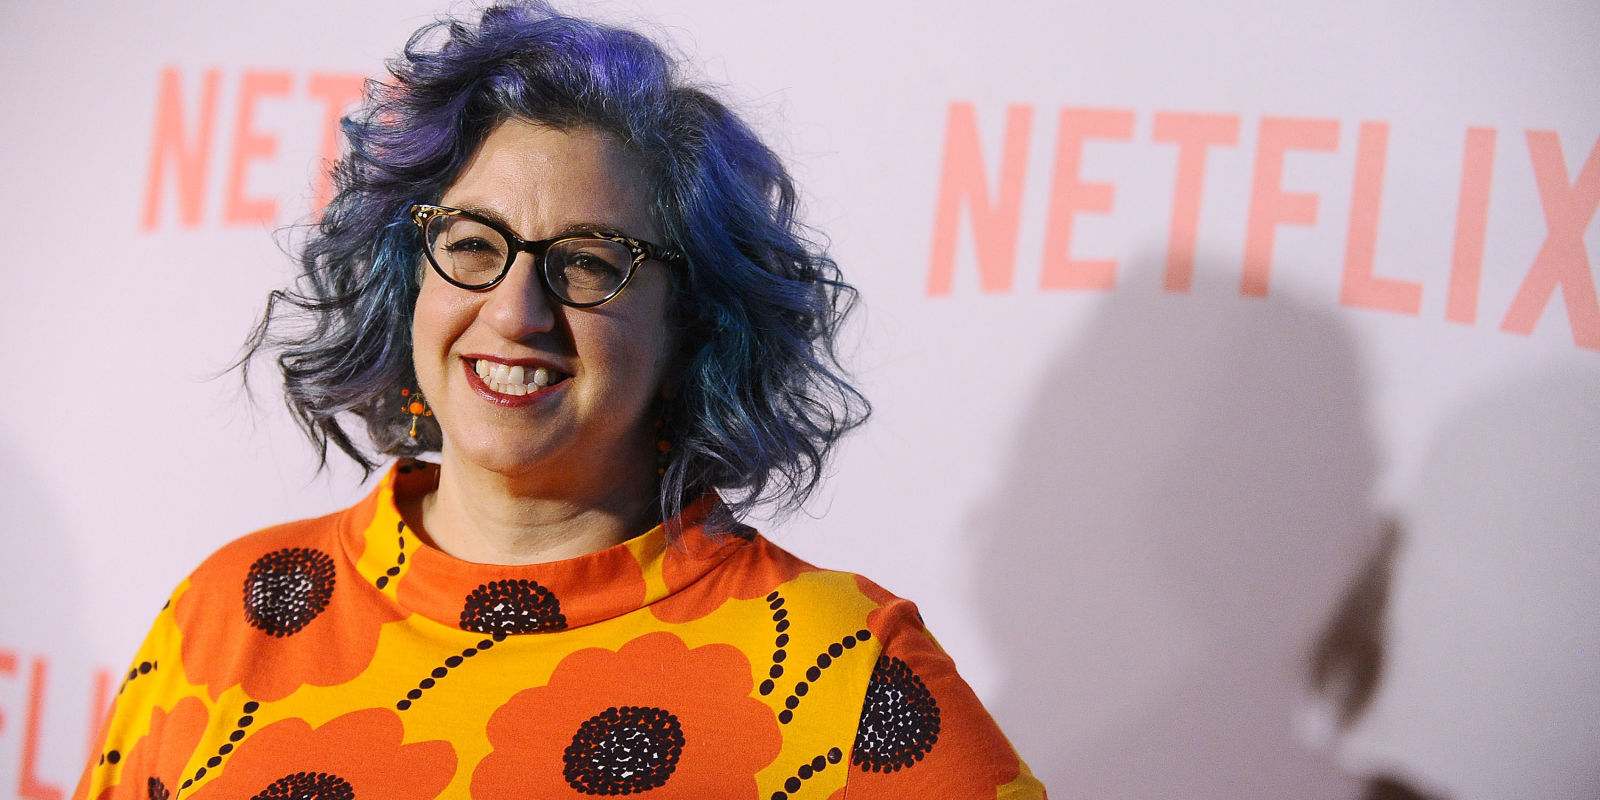 jenji kohan weedsjenji kohan weeds, jenji kohan glow, jenji kohan shows, jenji kohan twitter, jenji kohan new show, jenji kohan contact, jenji kohan imdb, jenji kohan production company, jenji kohan christopher noxon, jenji kohan agent, jenji kohan house, jenji kohan instagram, jenji kohan bio, jenji kohan series, jenji kohan pronunciation, jenji kohan wrestling, jenji kohan feminist, jenji kohan email, jenji kohan quotes, jenji kohan the devil you know